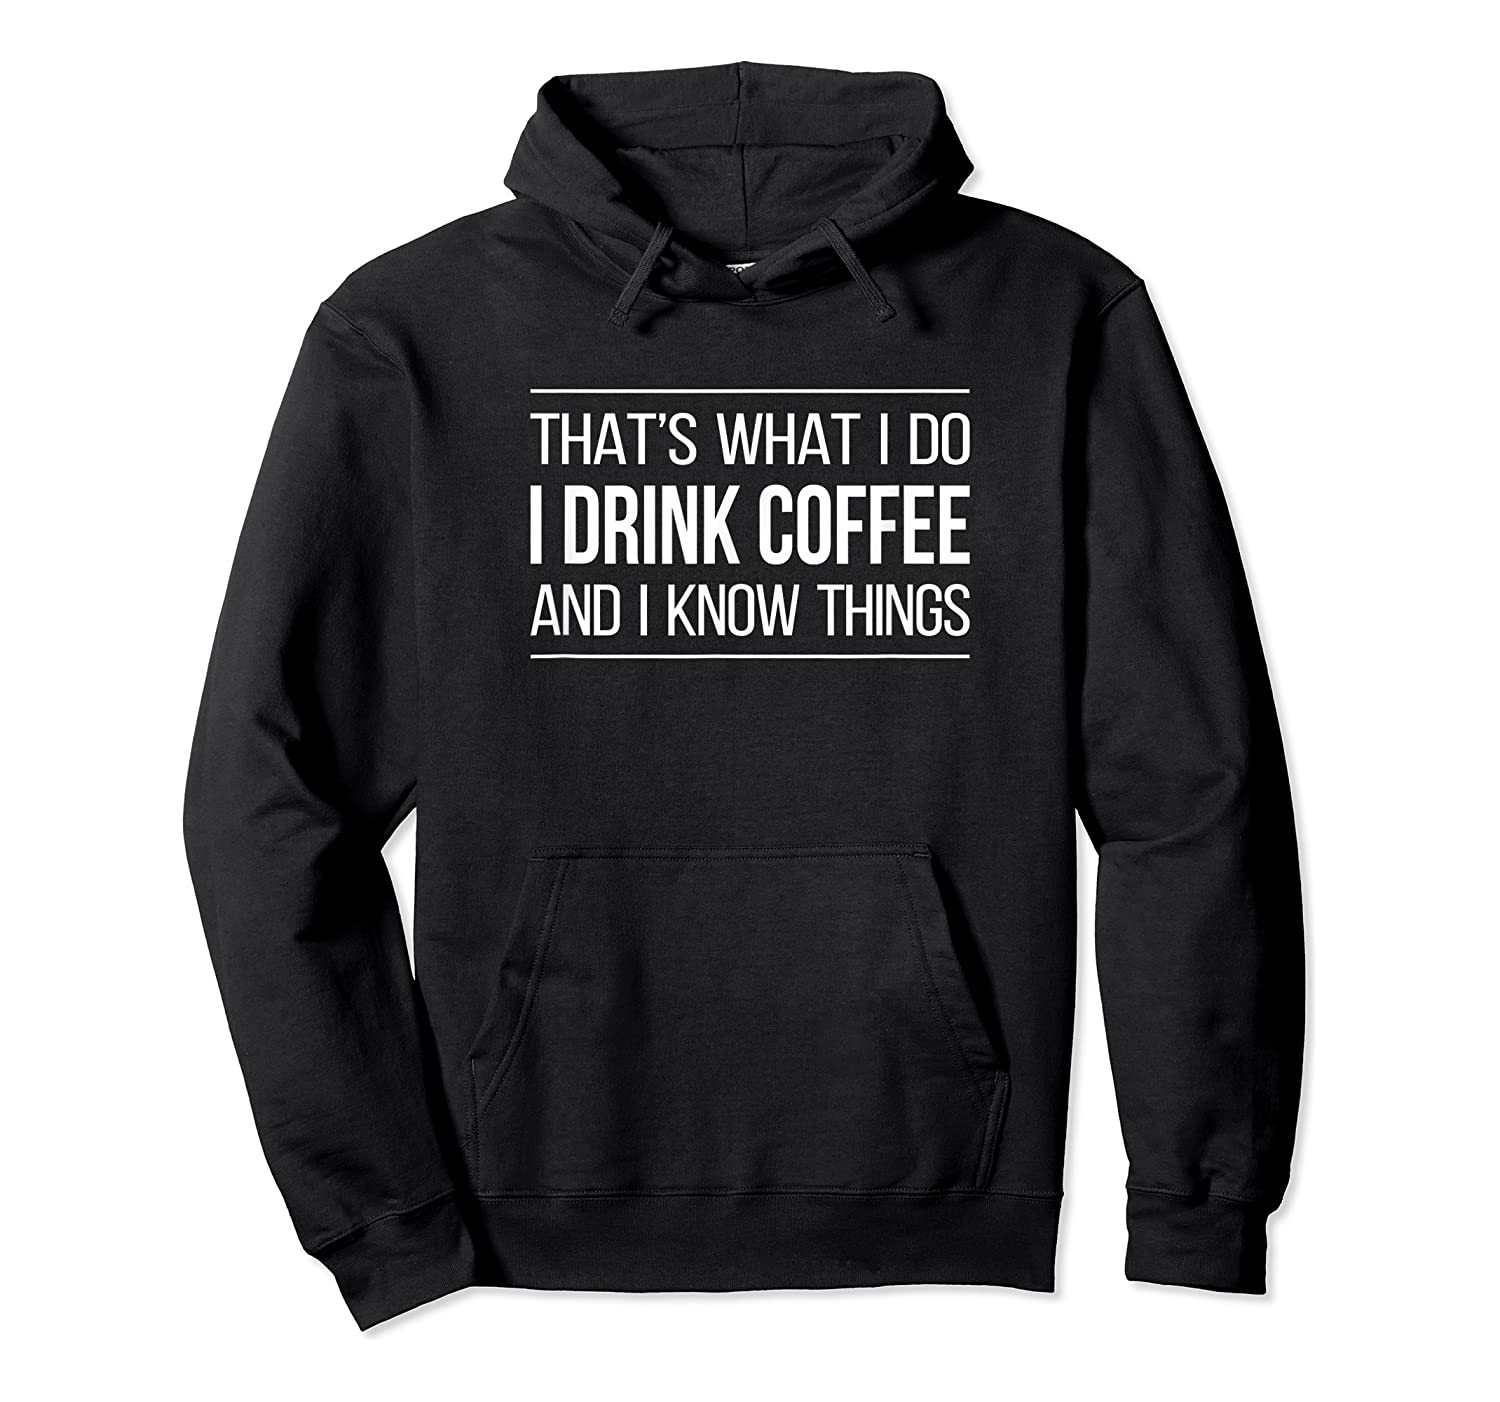 That's What I Do - I Drink Coffee And I Know Things - T-shirt Unisex Pullover Hoodie